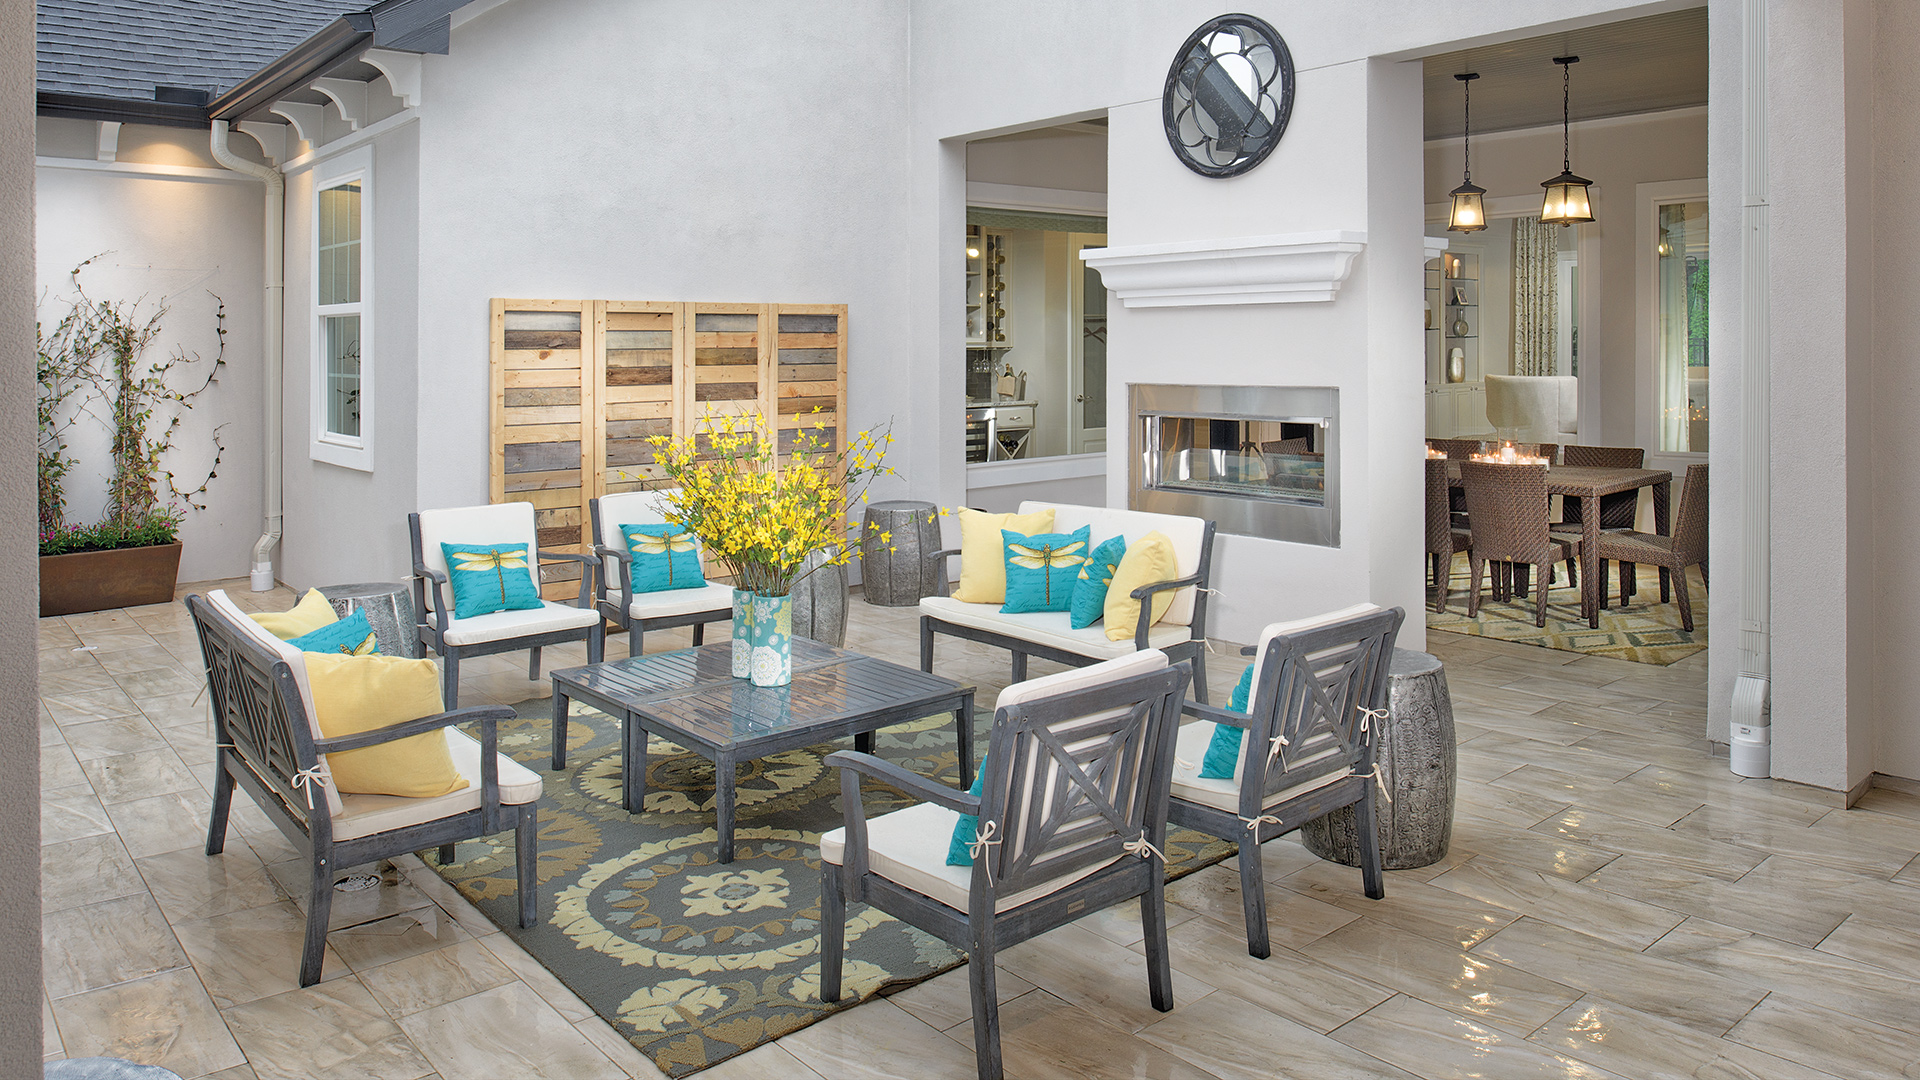 Southlake Meadows   The Vanguard Home Design on toll brothers landscaping, toll brothers hampton, toll brothers communities, toll brothers model homes, toll brothers windows, toll brothers builders, toll brothers homes florida, toll brothers doors, toll brothers exterior homes, toll brothers homes beachfront, toll brothers harding floor plan, toll brothers lots, toll brothers homes san antonio, toll brothers media room, toll brothers design, toll brothers texas, toll brothers decks, toll brothers construction, toll brothers homes california, toll brothers architecture,